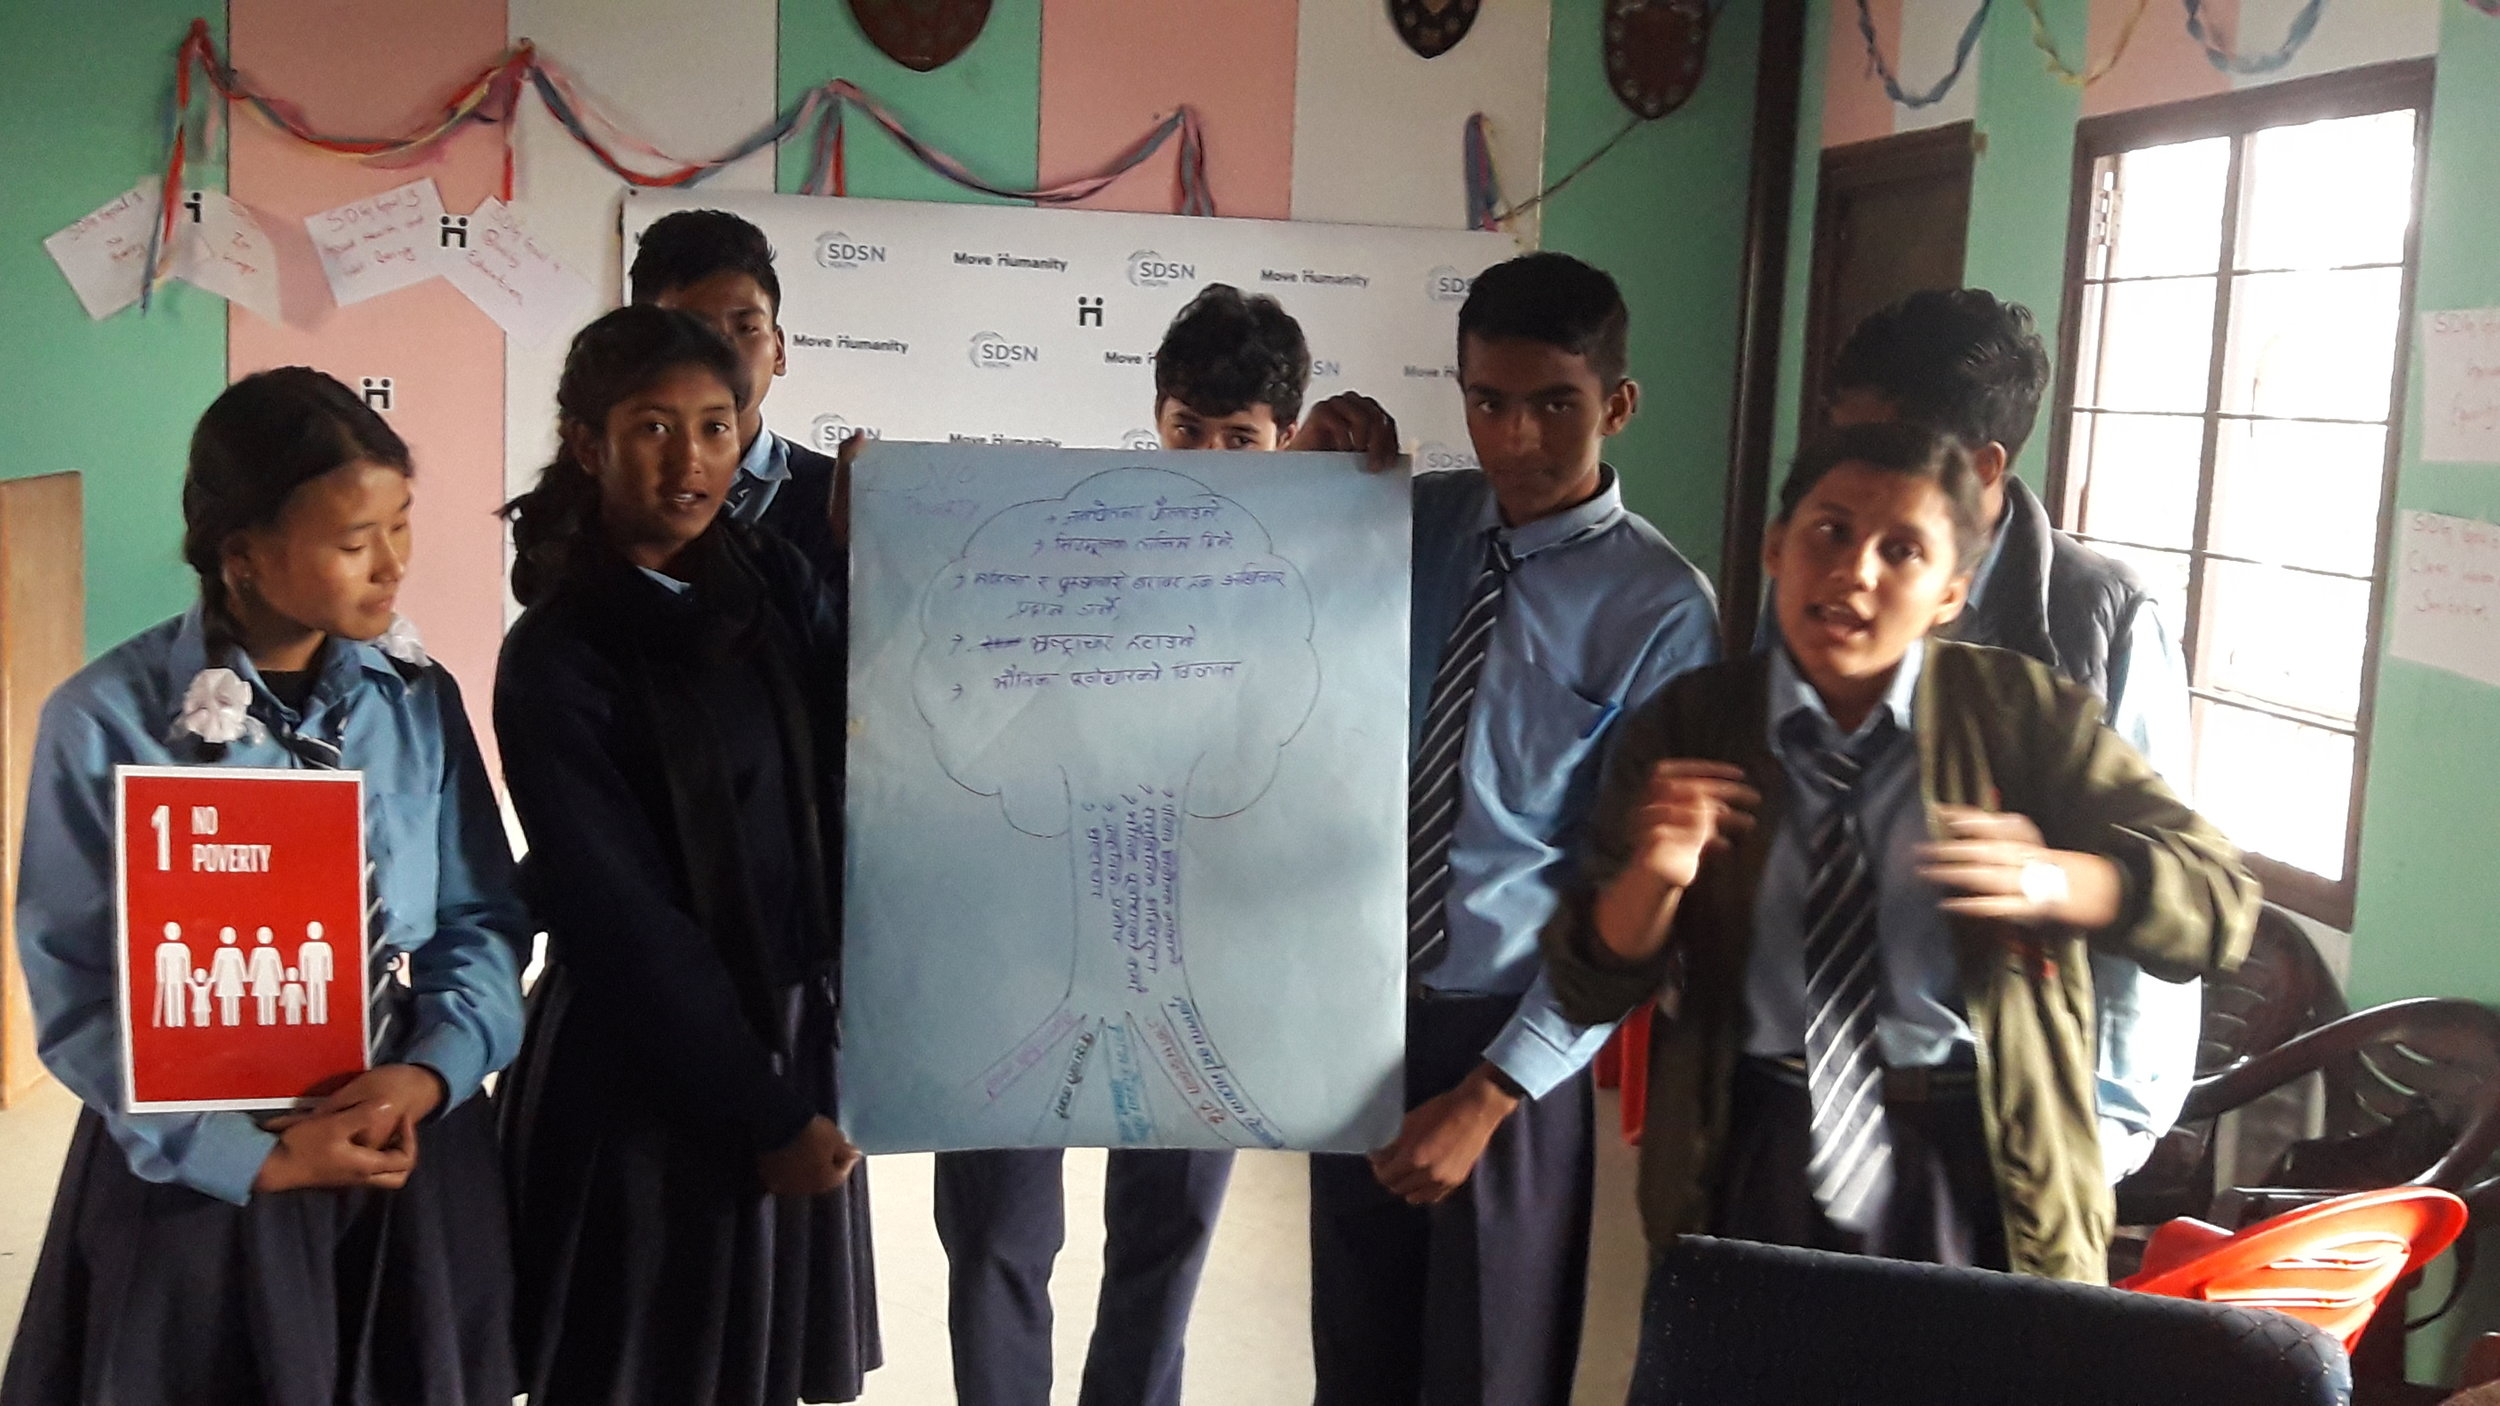 Group Presentation by the Youth Students of Gorakhnath School on SDG 1